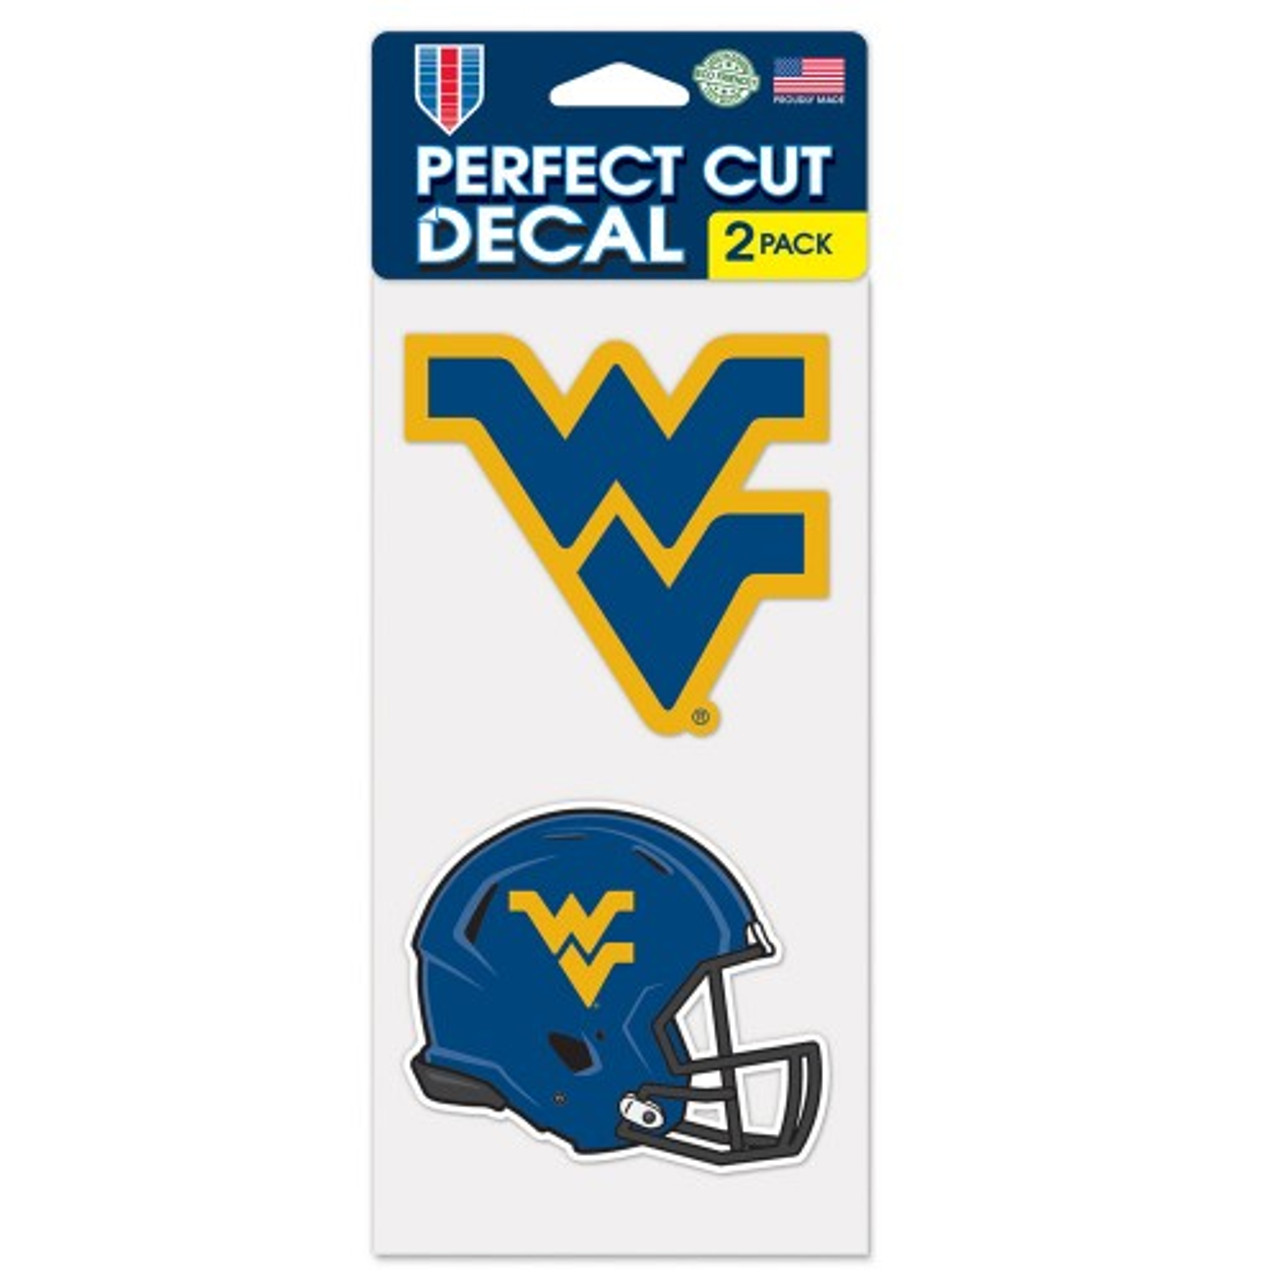 West Virginia Mountaineers Decal 4x4 Perfect Cut Set of 2 Alternate Design